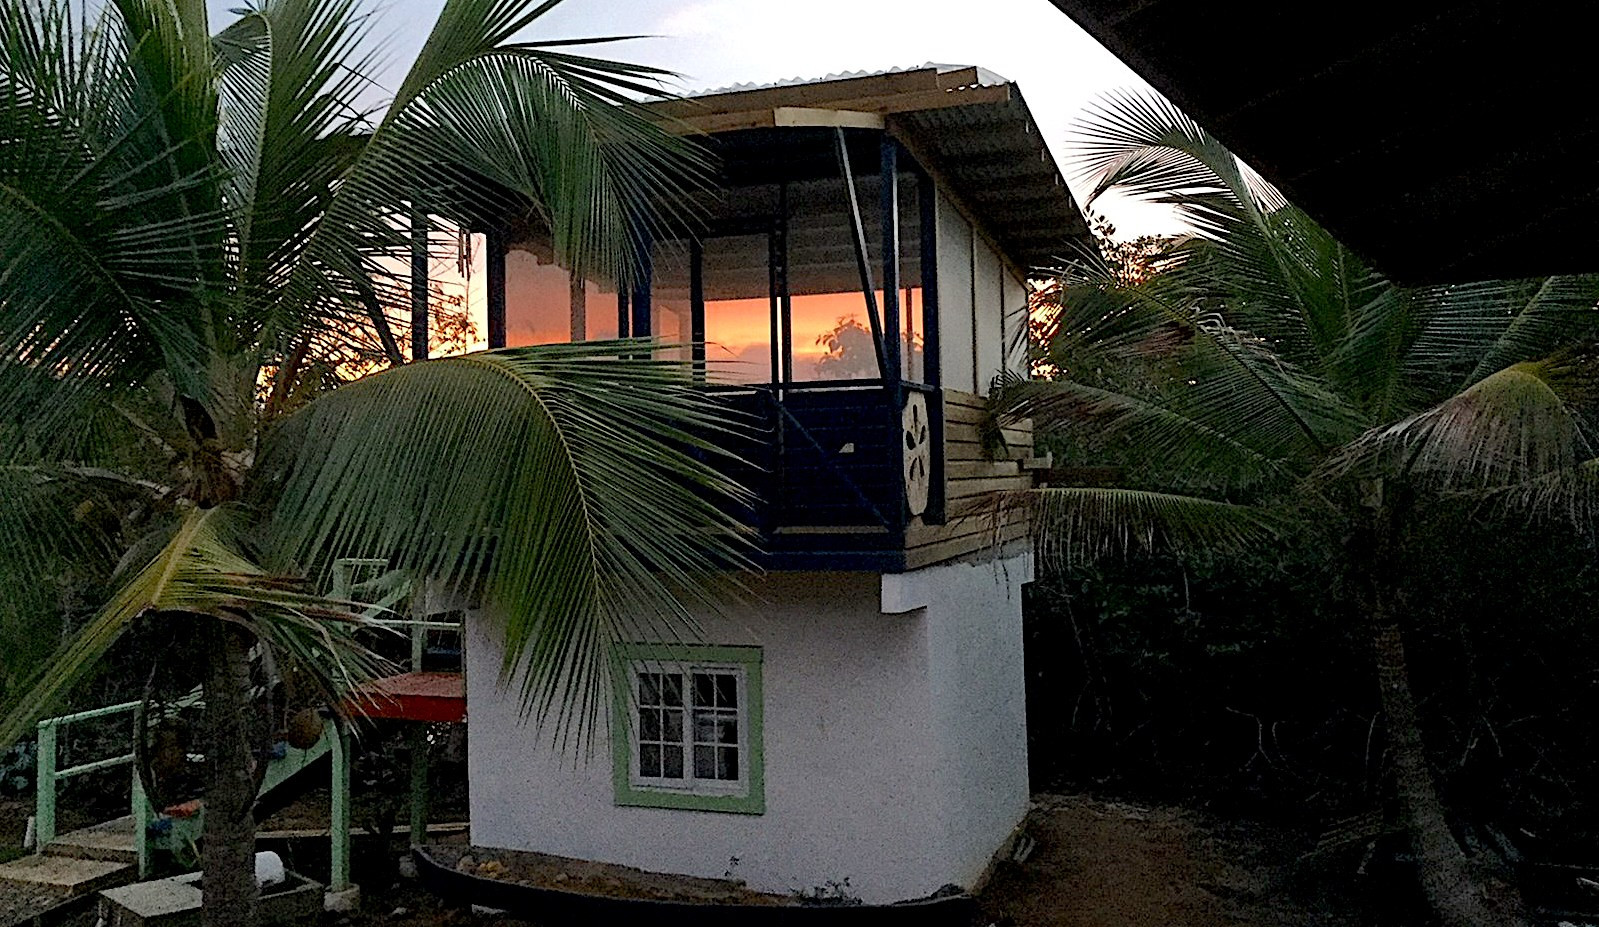 Private Island w/House, Rest/Bar/Yoga in Bocas del Toro, Panama